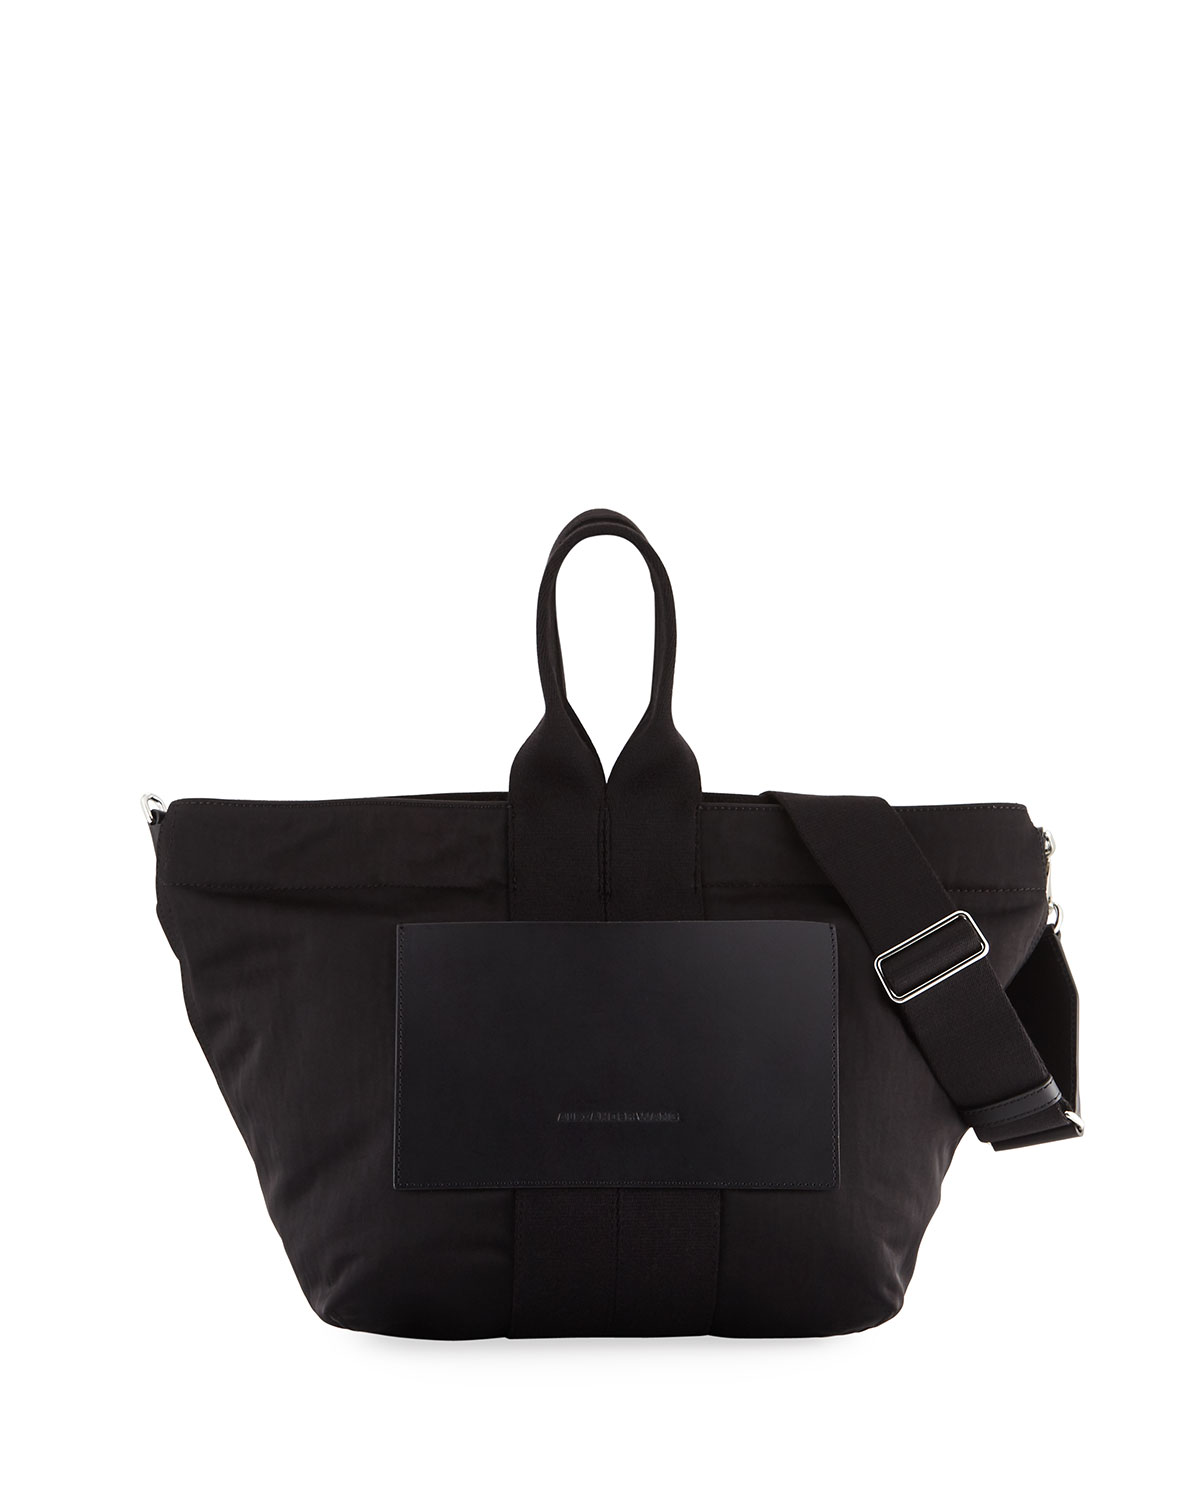 84030ffaff Alexander Wang AW Small Soft Nylon Tote Bag